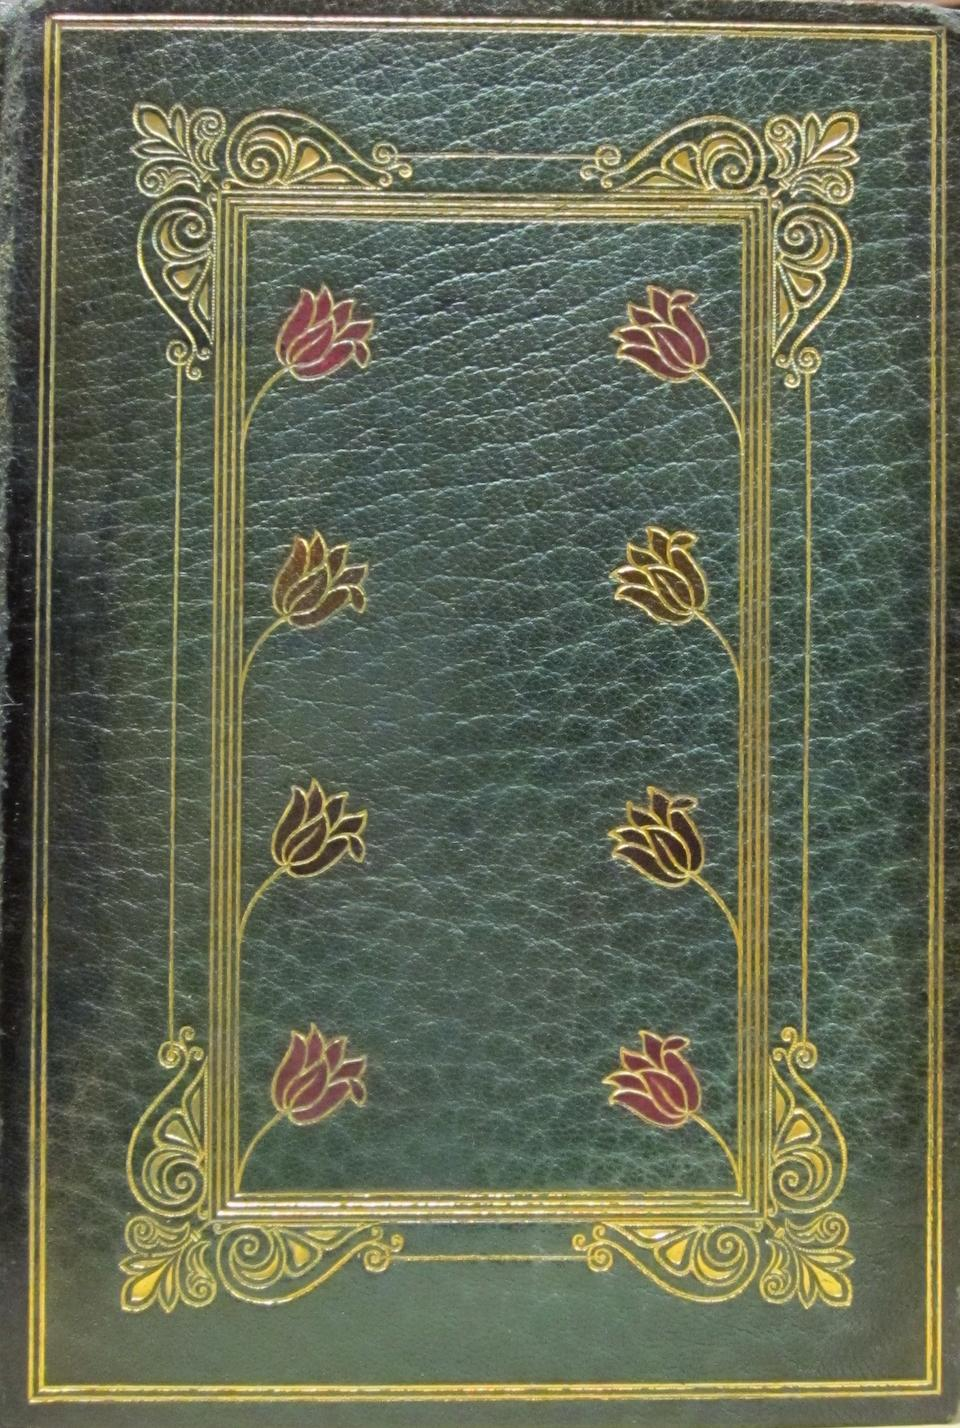 CLEMENS, SAMUEL LANGHORNE. 1835-1910. The Writings of Mark Twain. Hartford, CT: The American Publishing Company, 1899-1907.